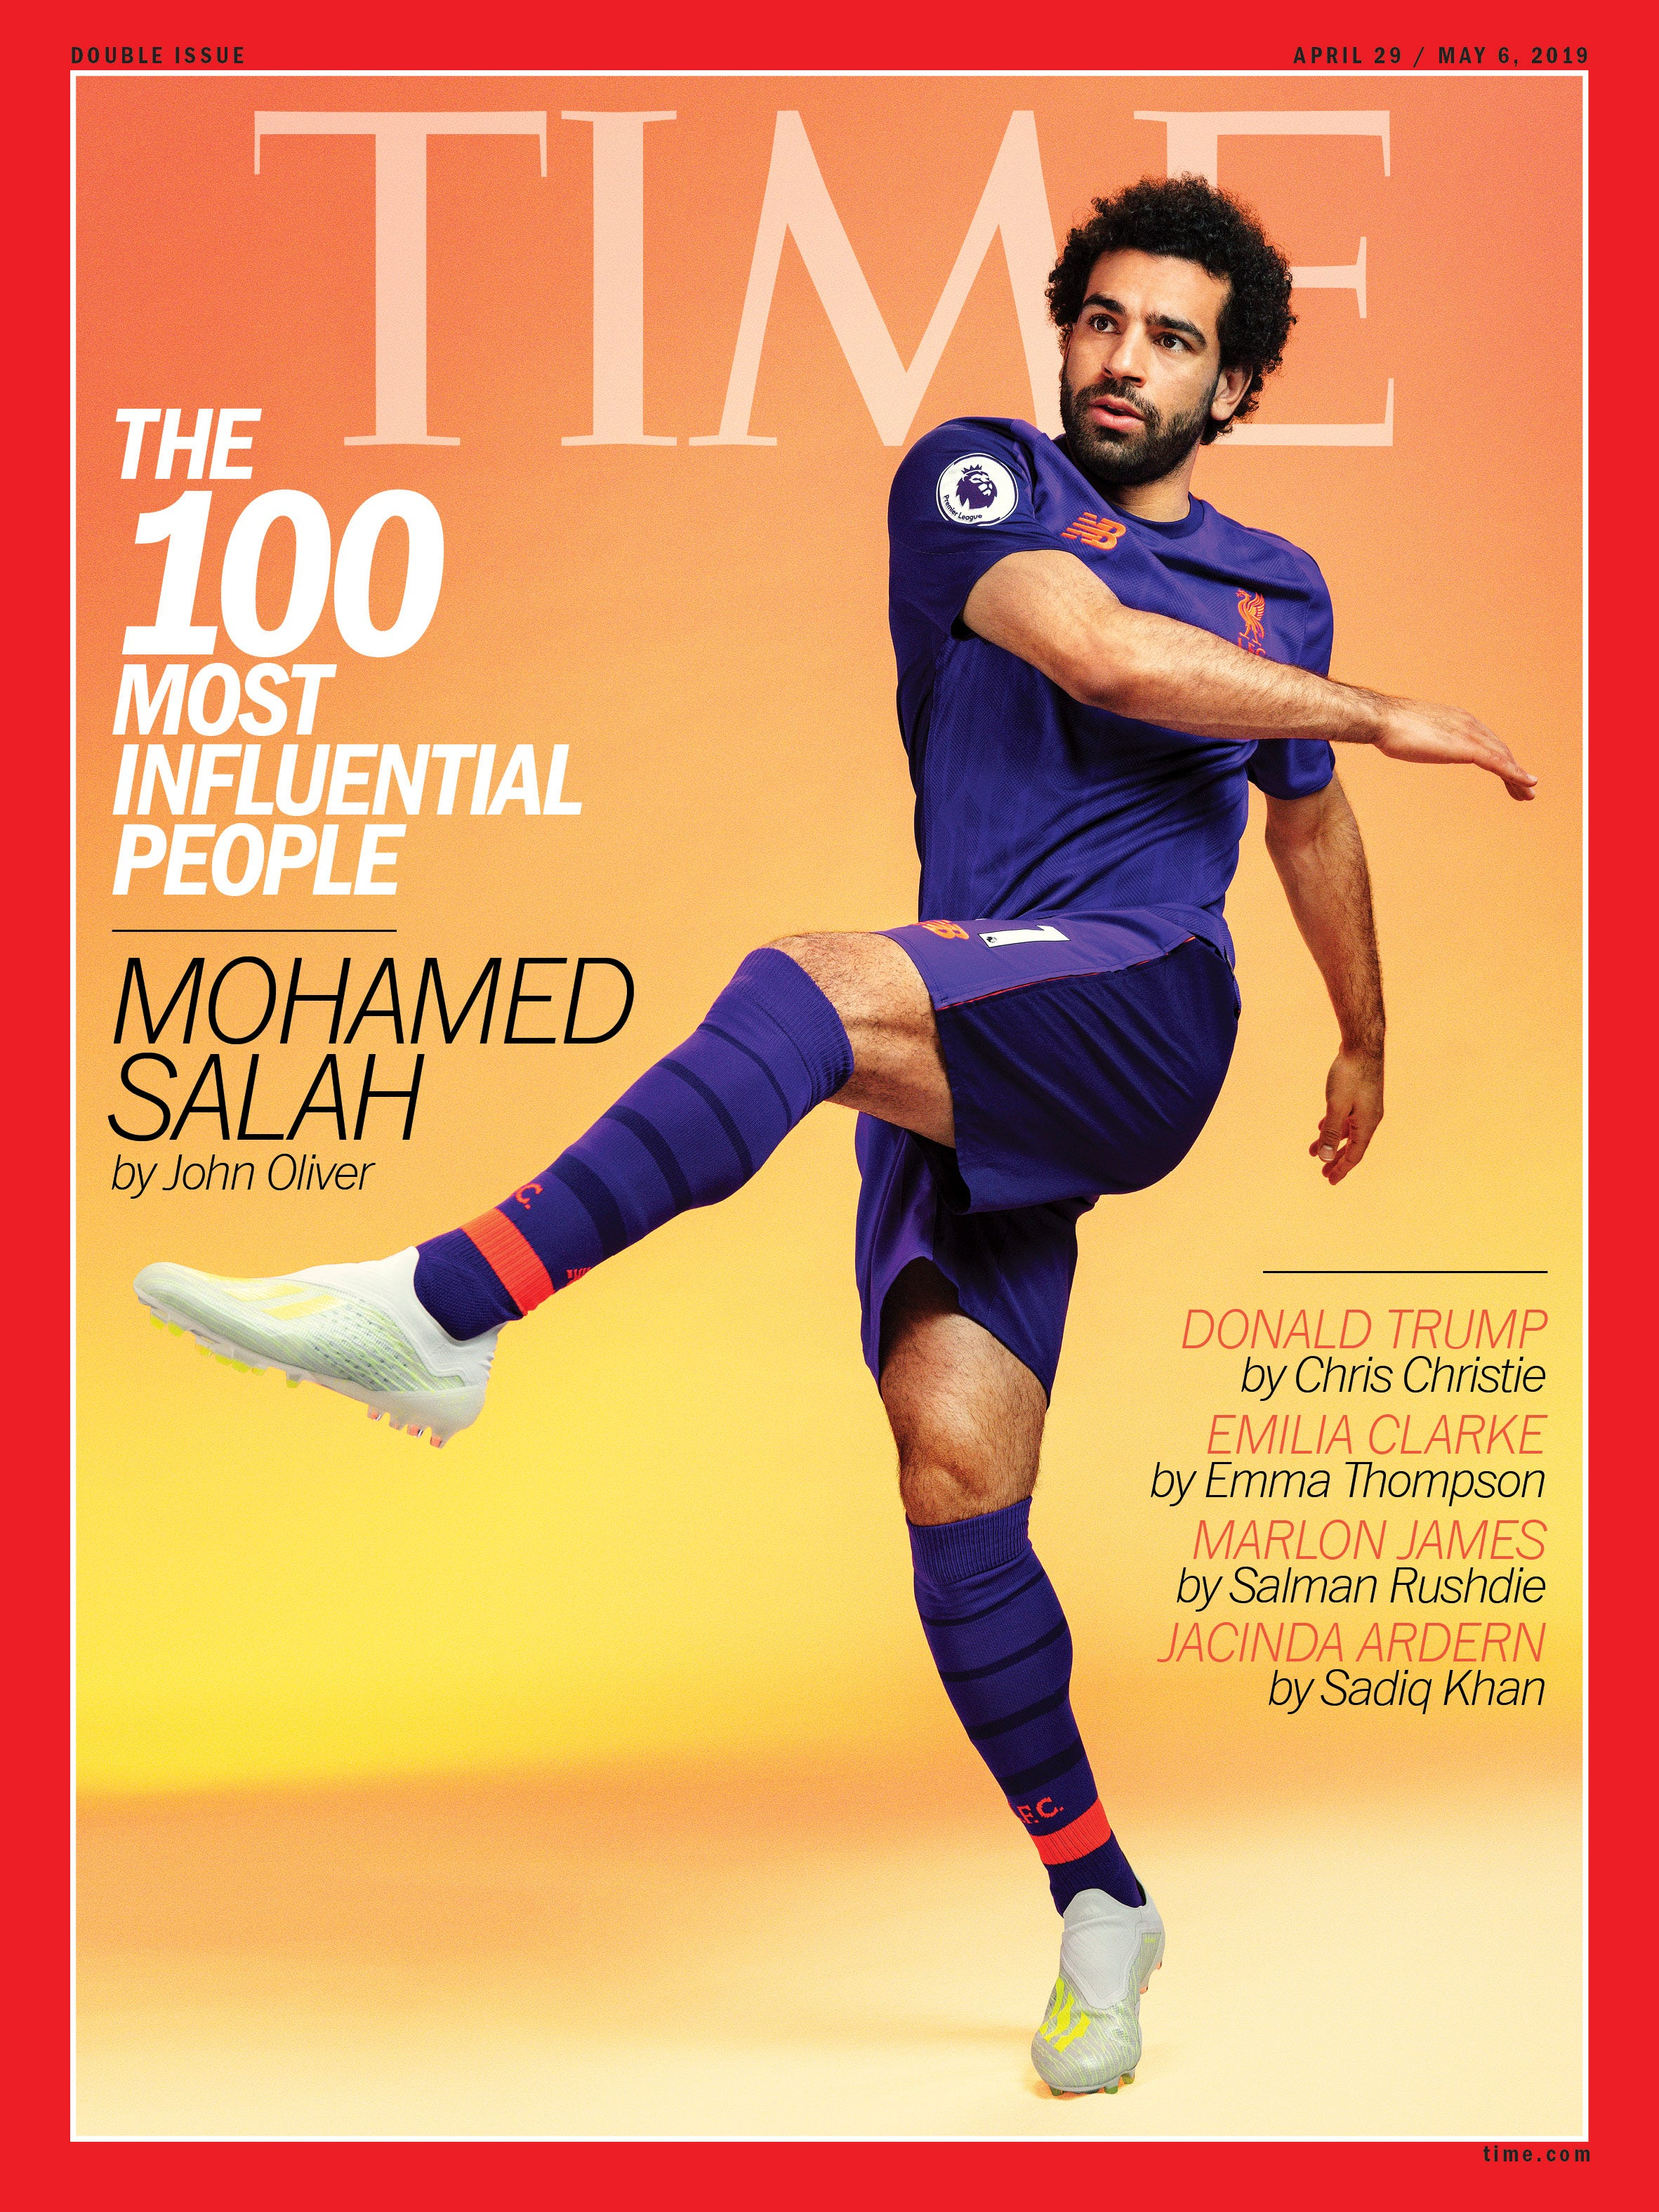 Professional soccer player Mohamed Salah